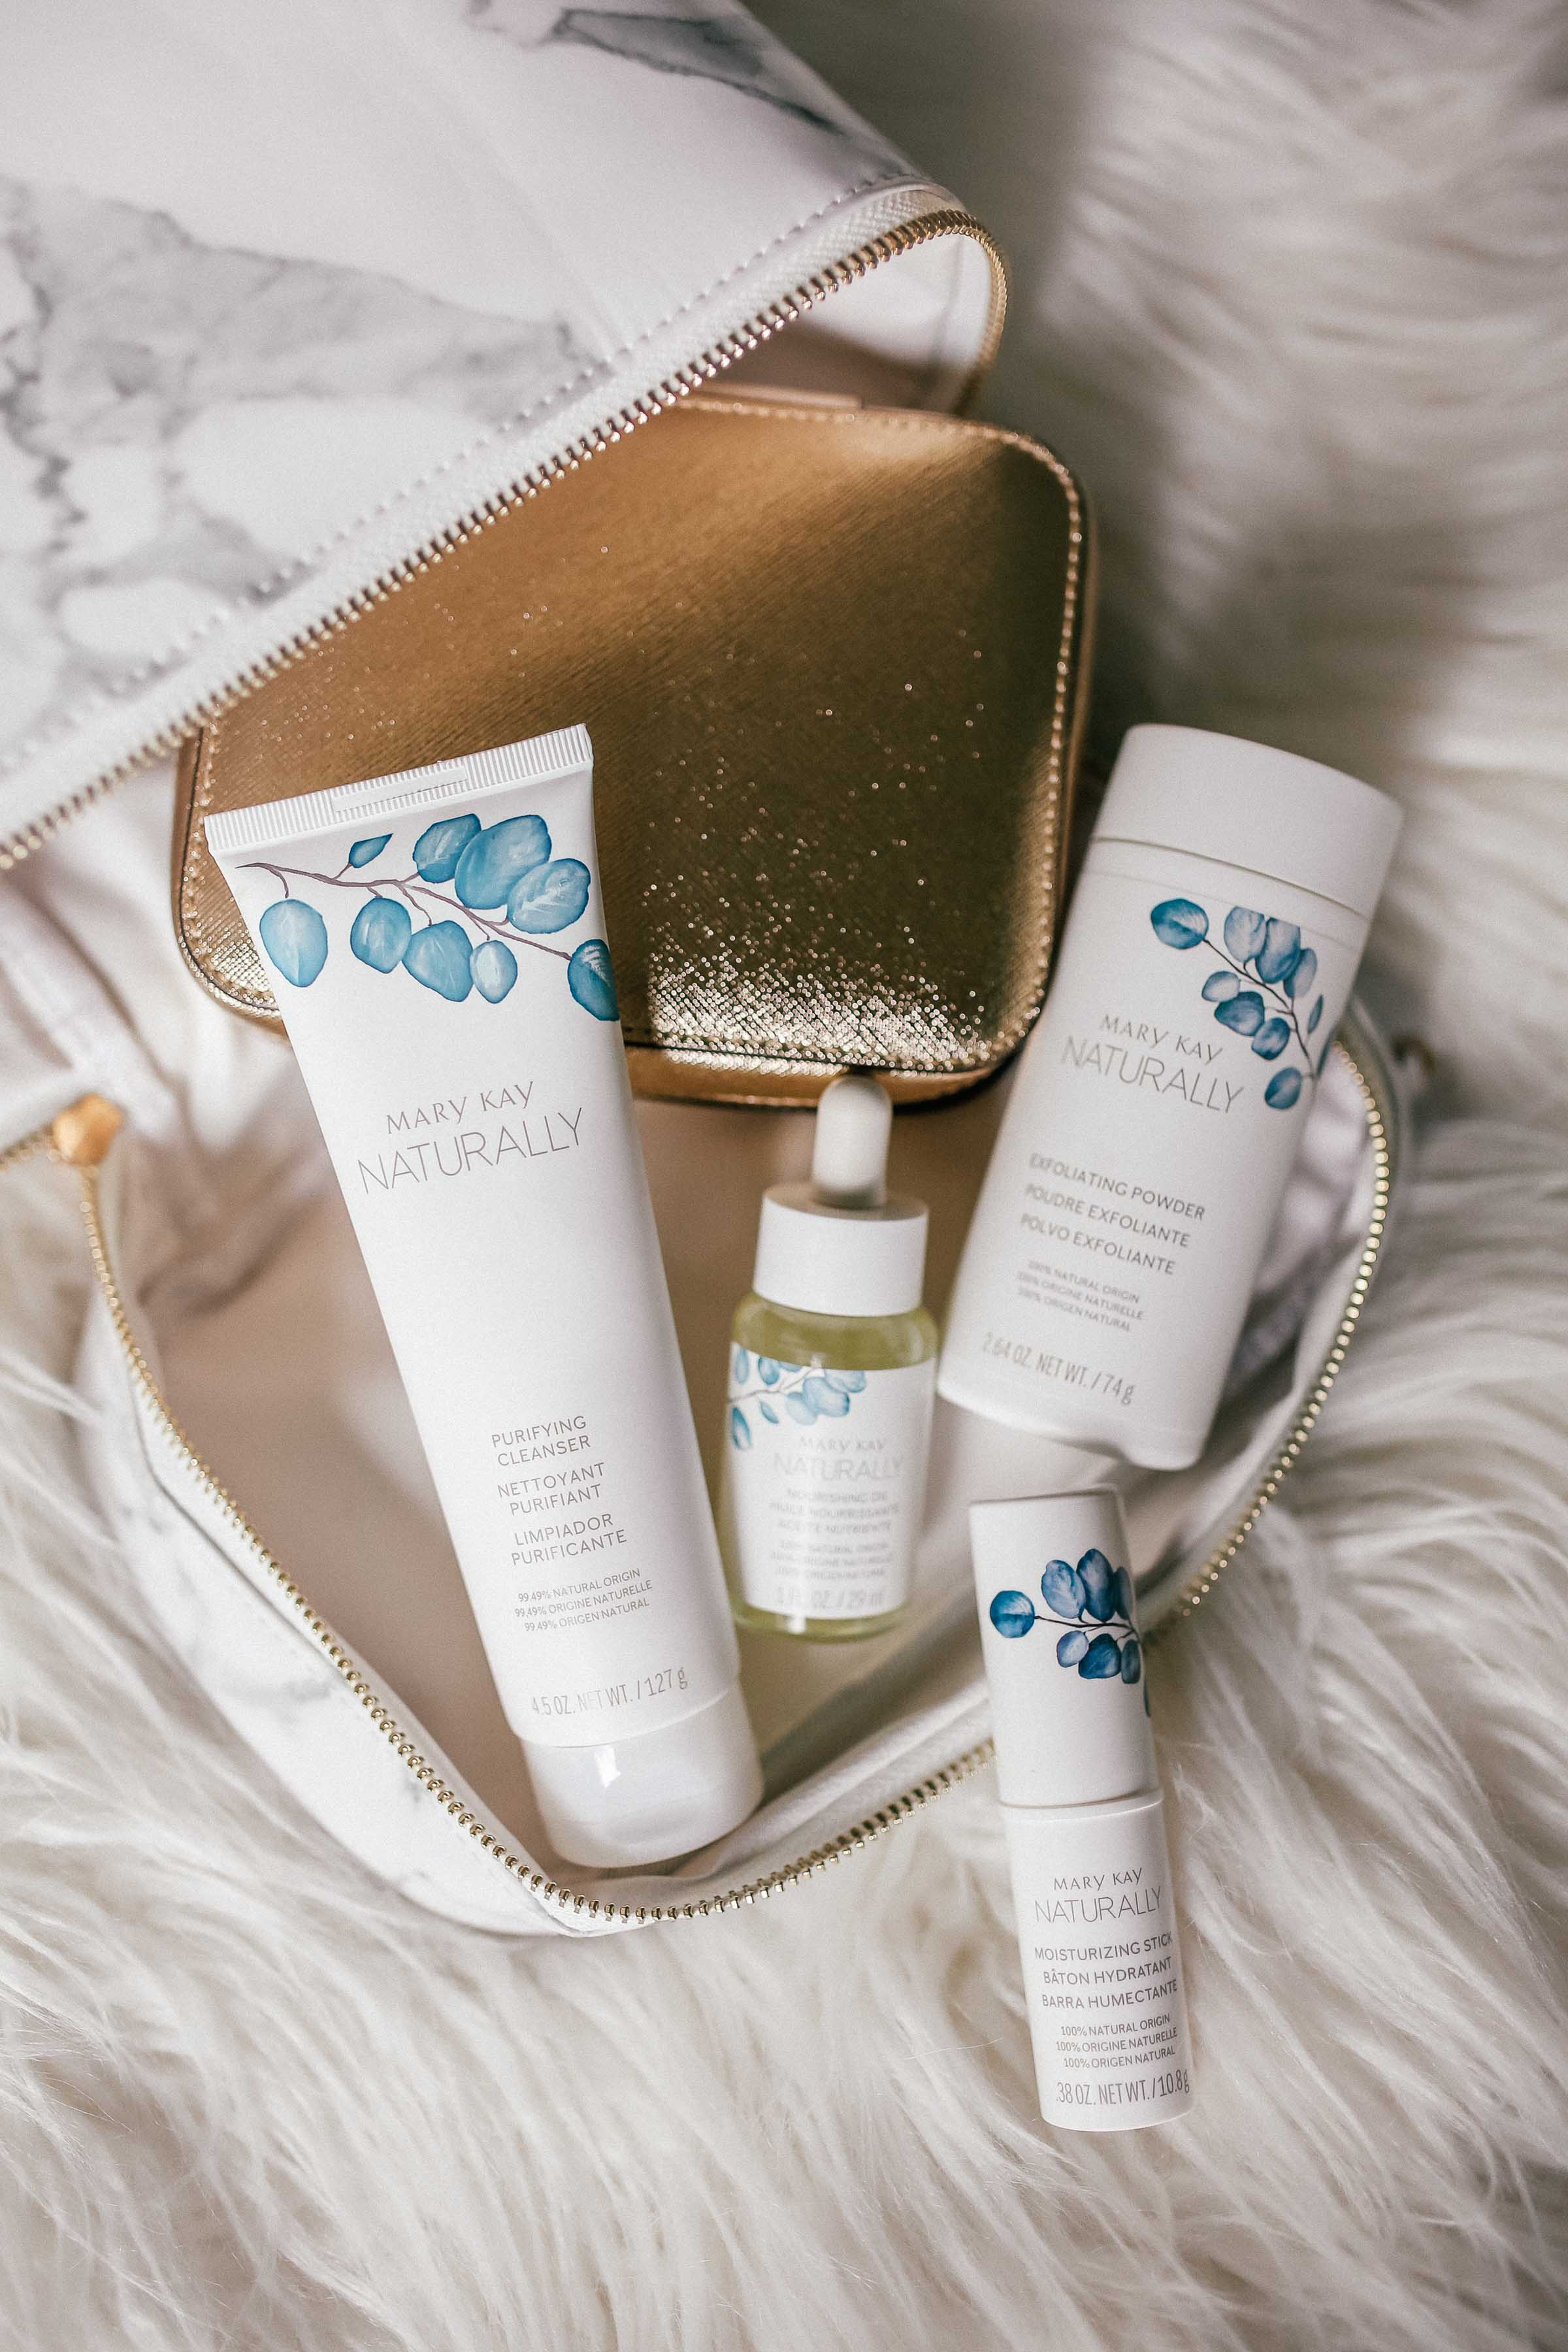 Natural Skincare Update | Reboot Your Beauty Routine | Mary Kay Naturally